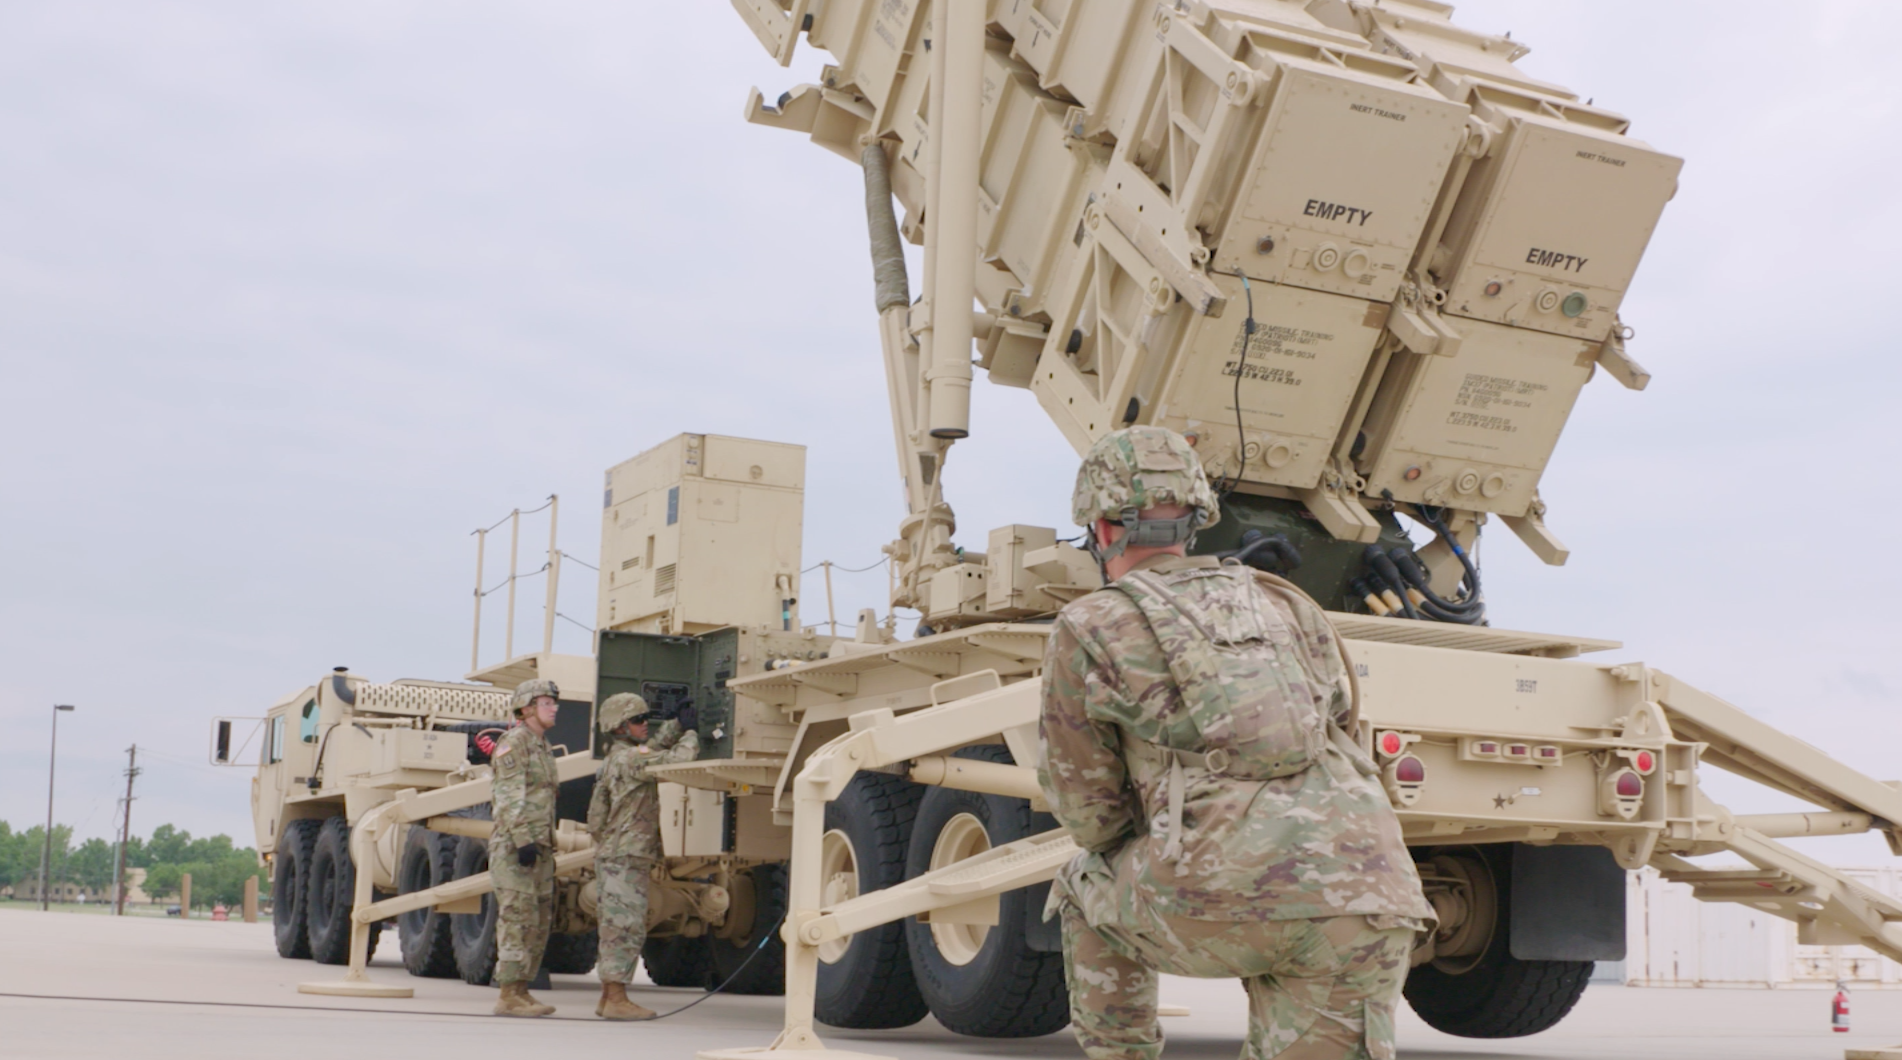 Patriot Launching Station Enhanced Operator/Maintainer (14T